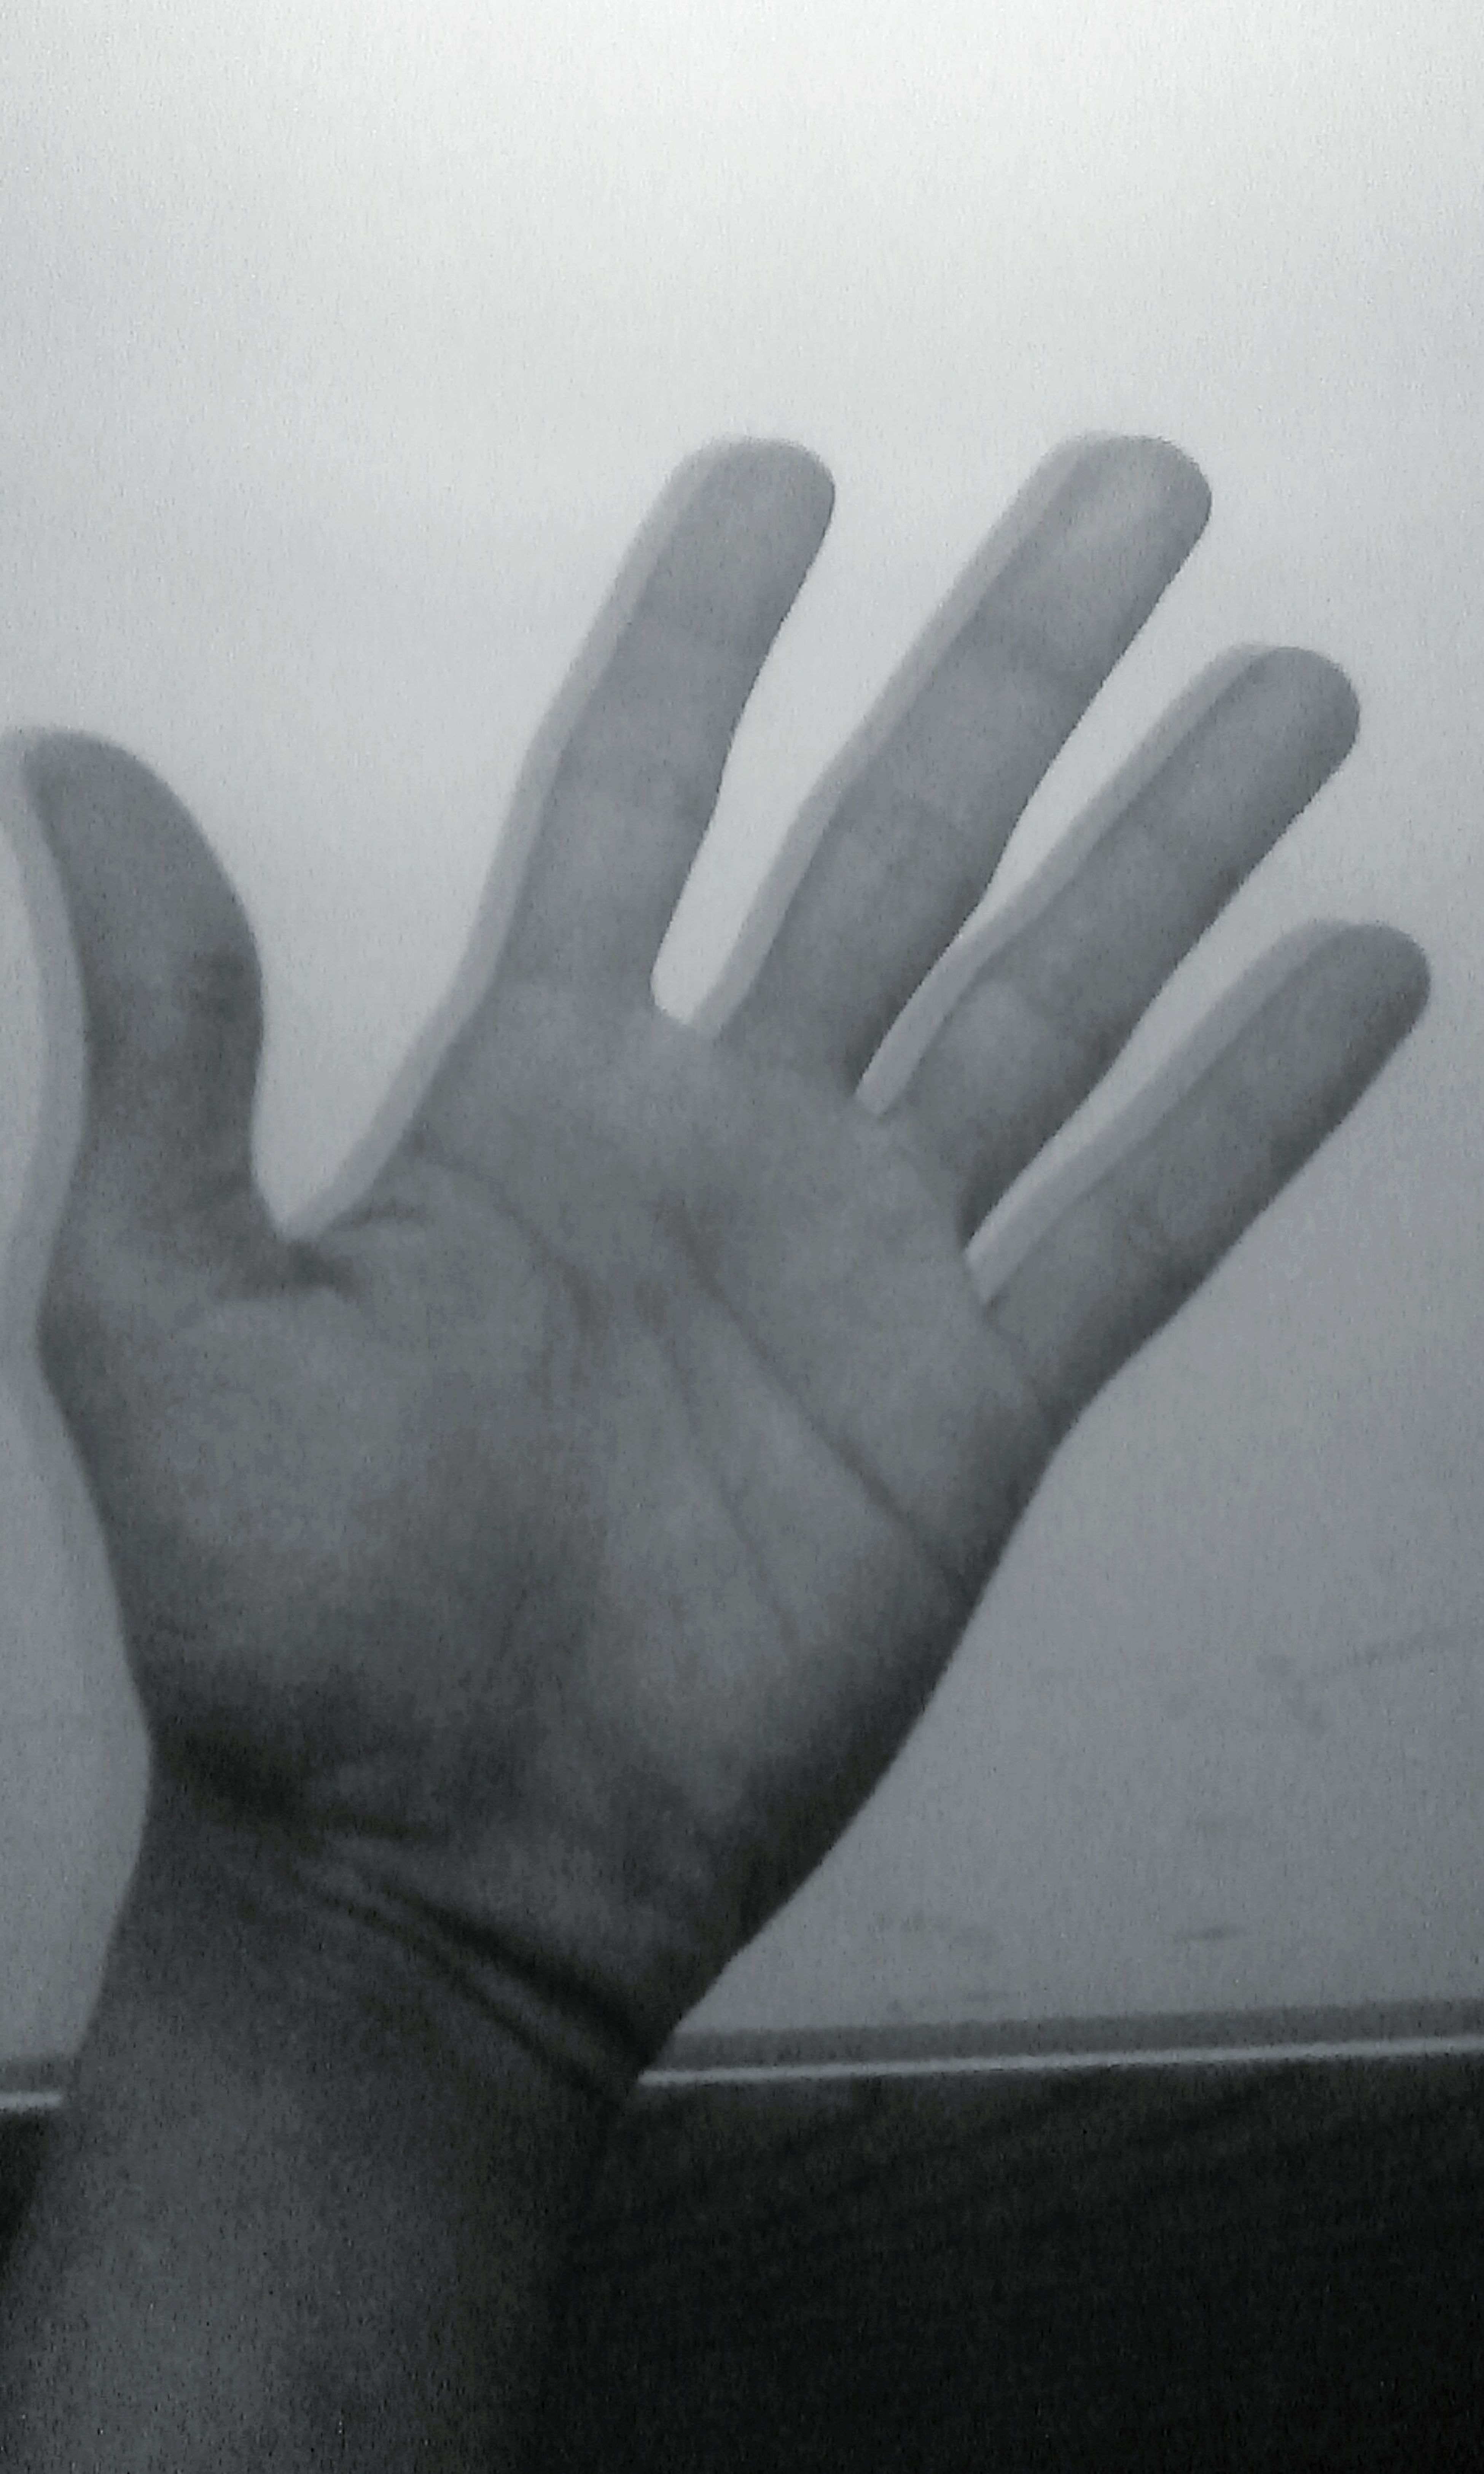 Hand can say many thing